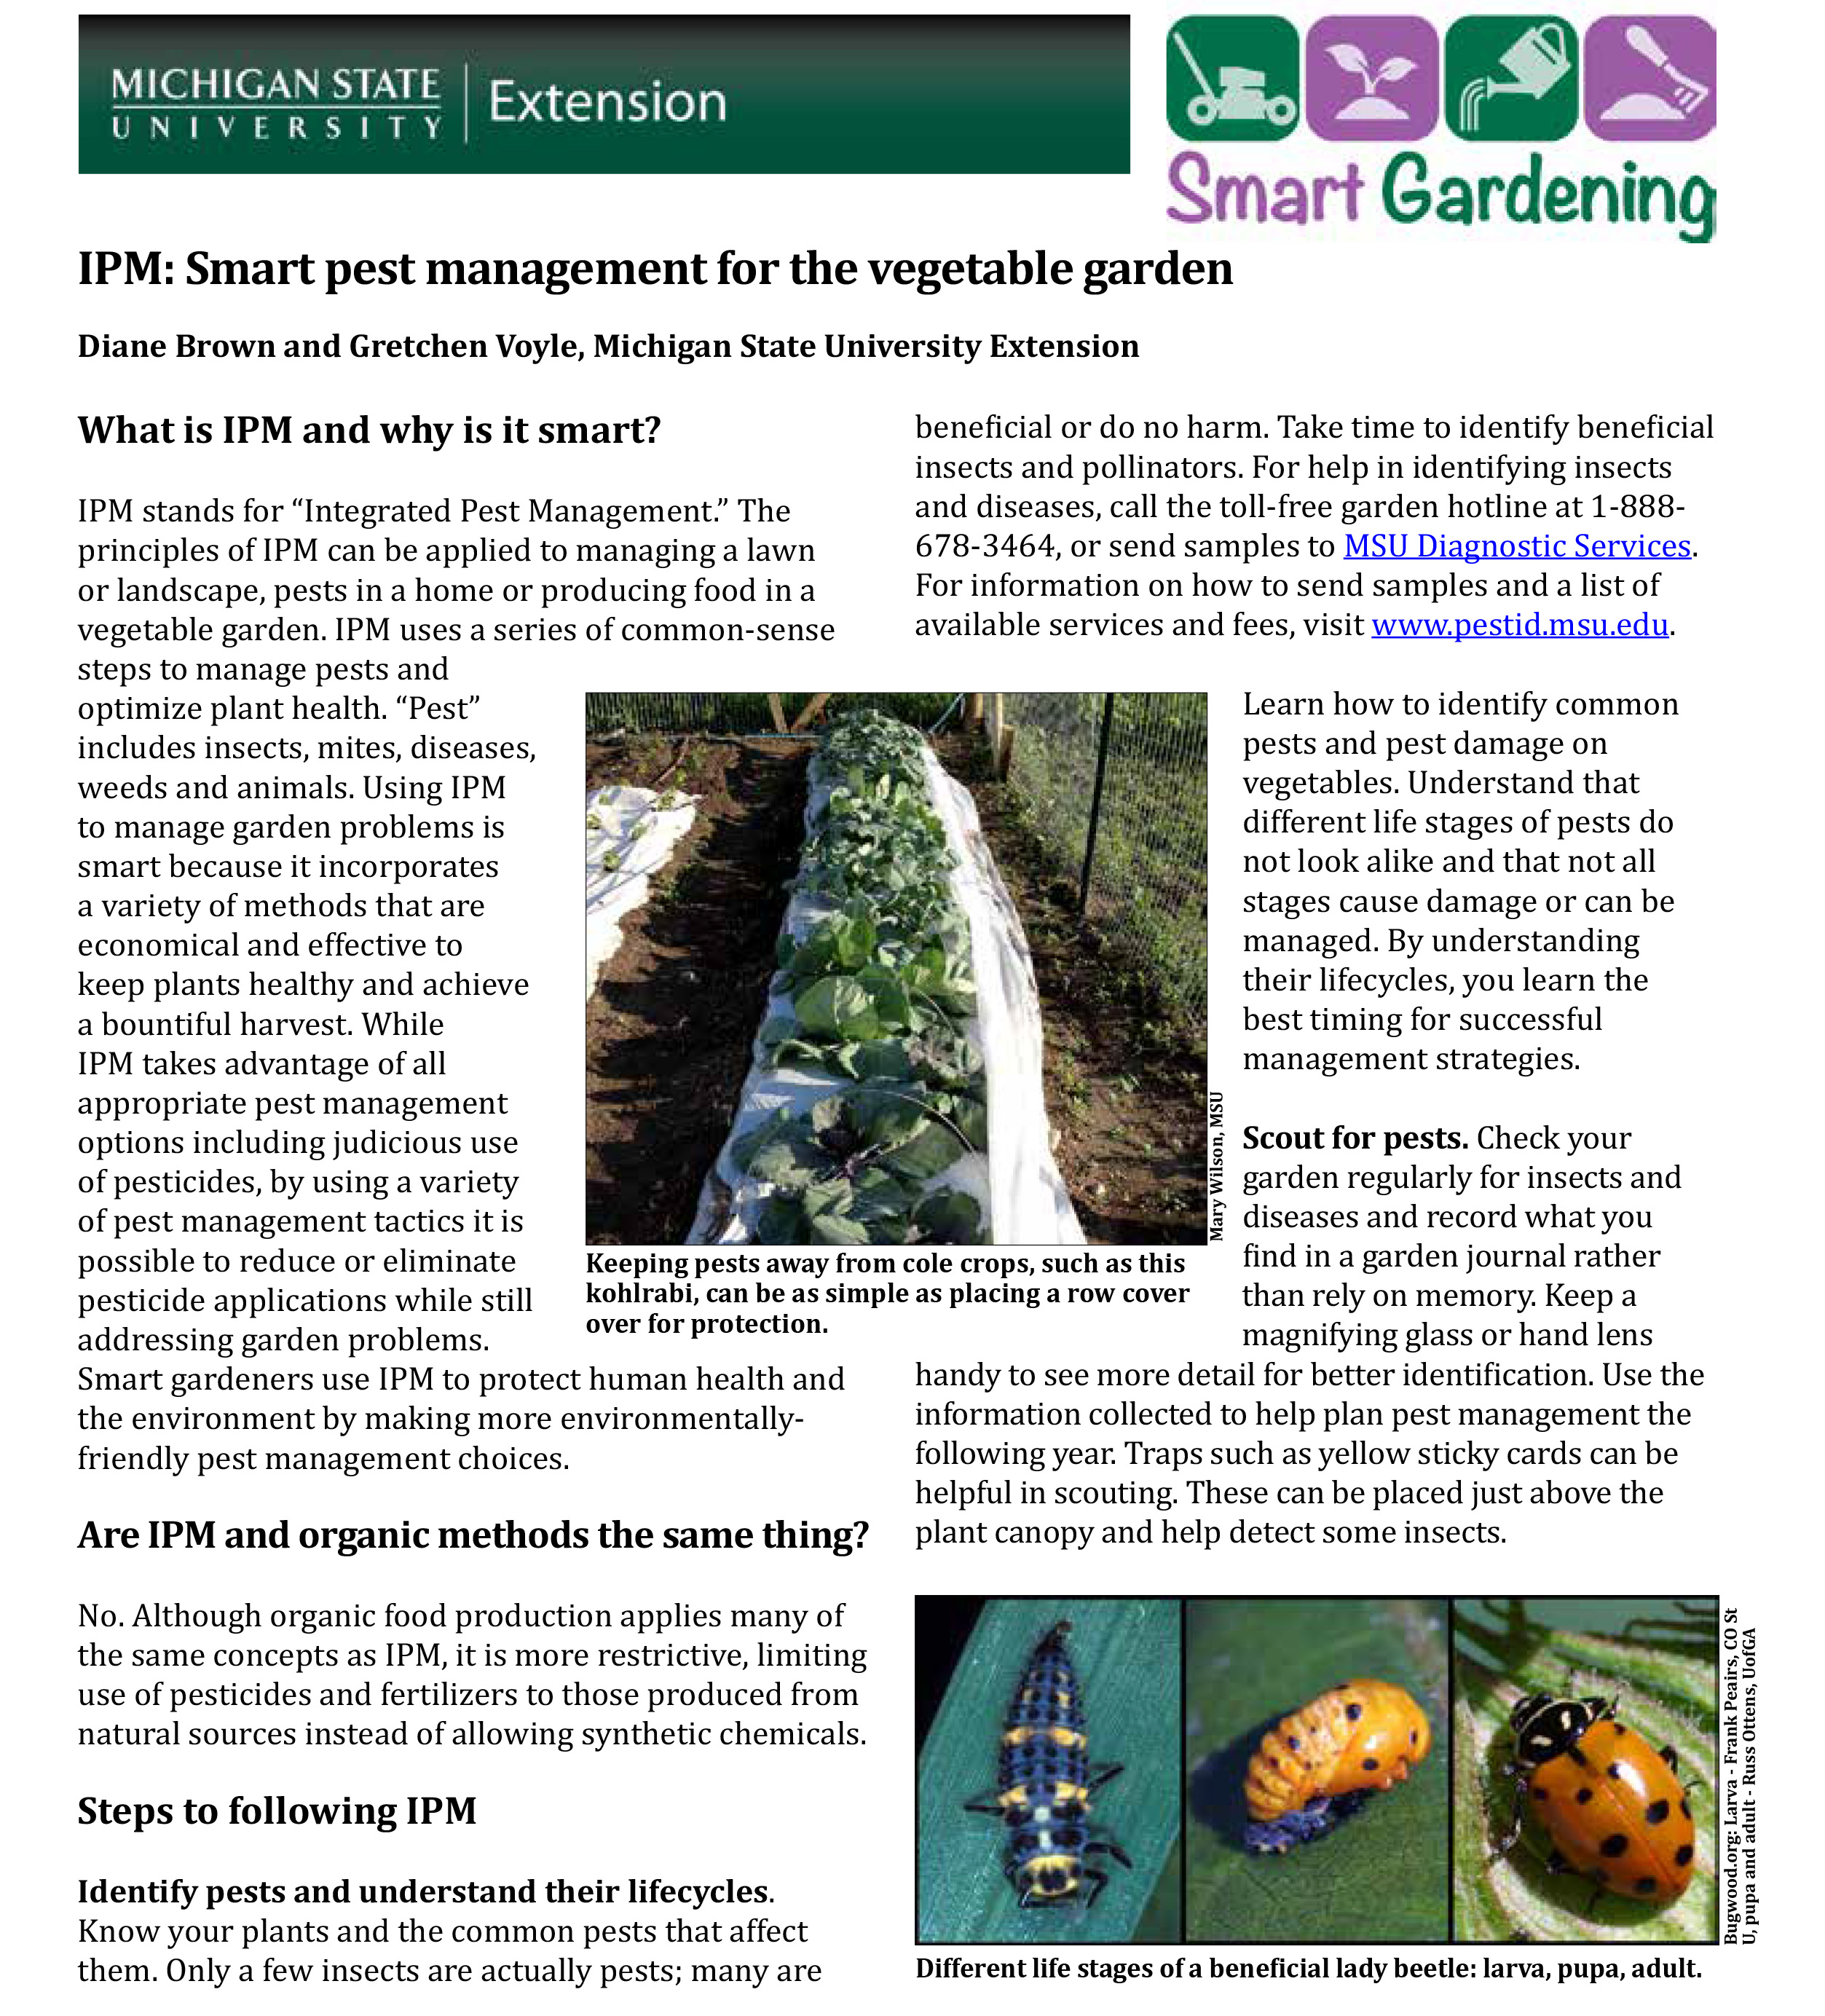 Ipm smart pest management for the vegetable garden msu extension - Smart gardening small steps for an efficient activity ...